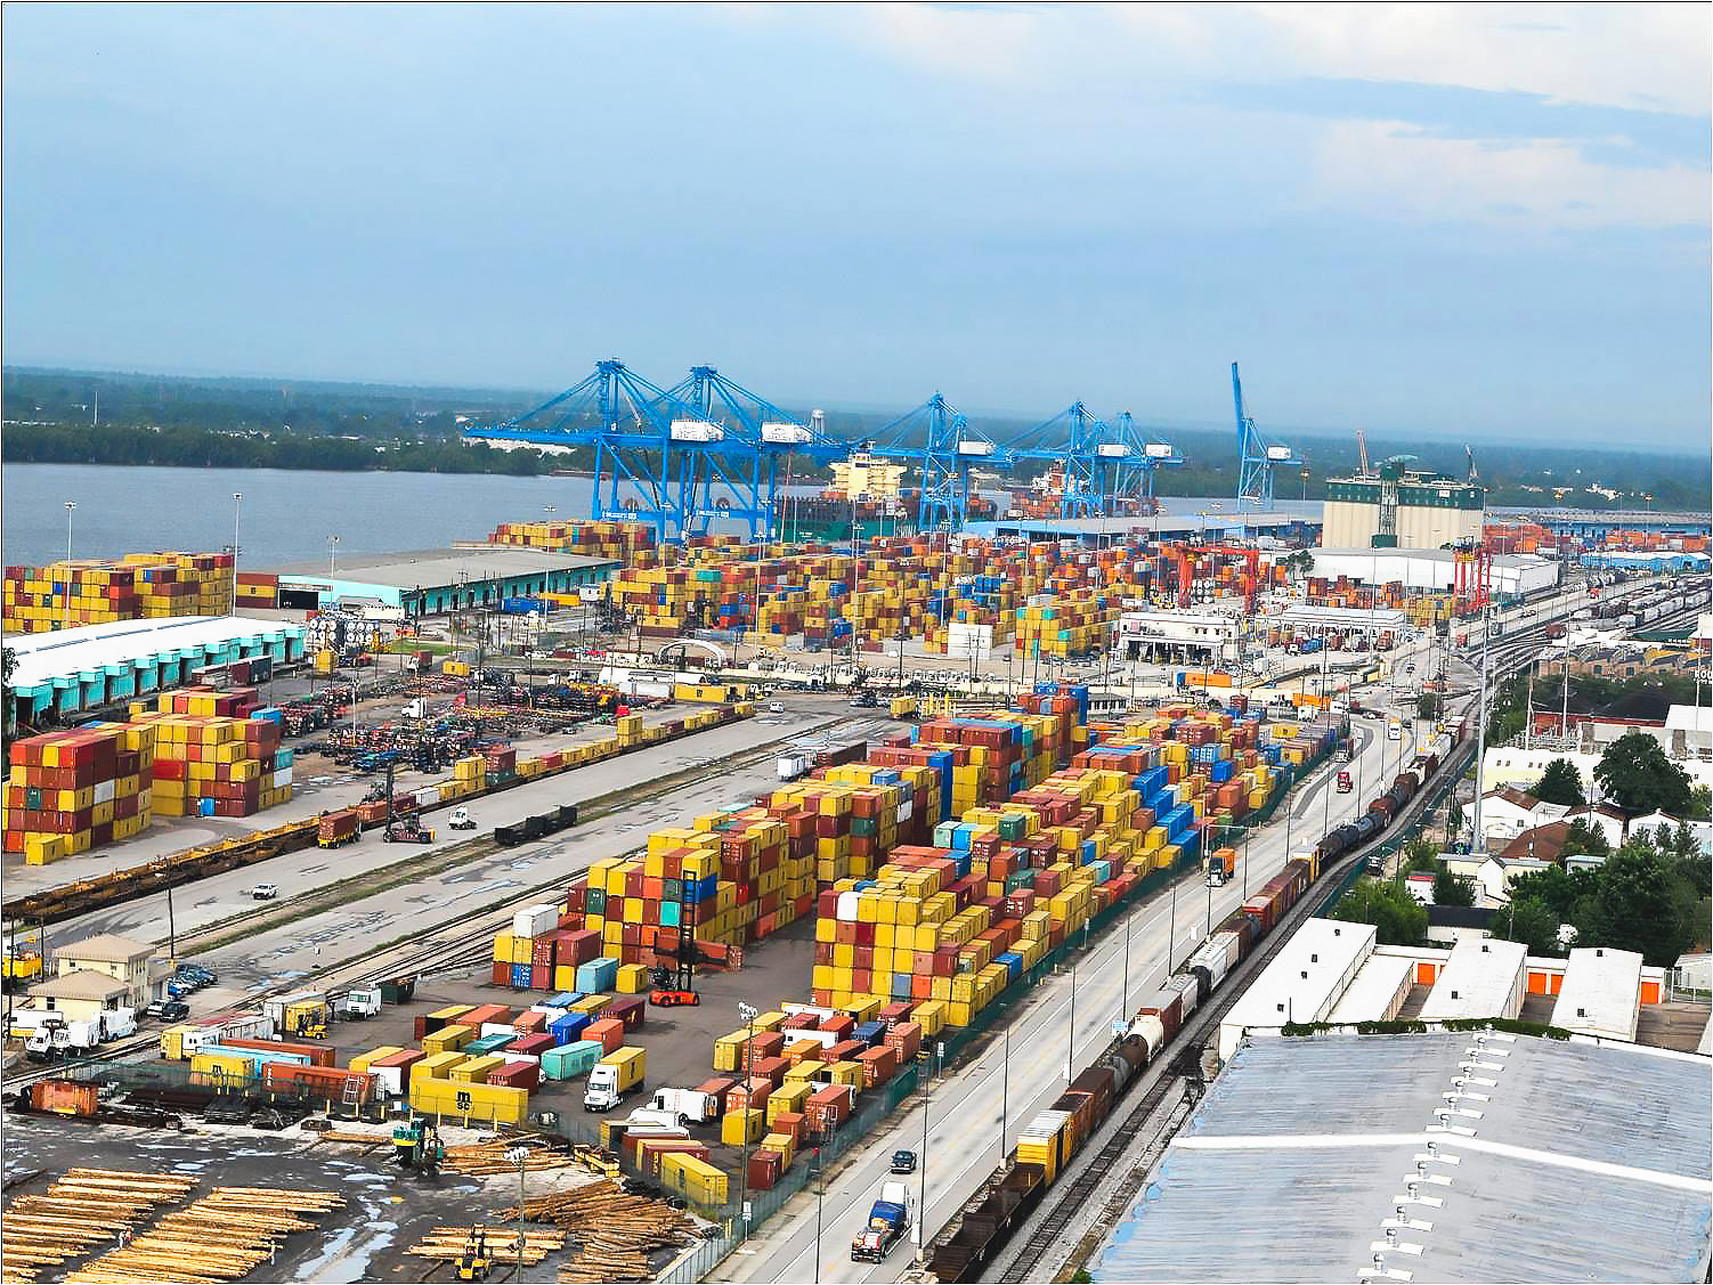 CONTAINERS, CONTAINERS EVERYWHERE: The Port of New Orleans is expanding port capacity from 800,000 TEUs per year to 1.5 million TEUs annually. (Photo courtesy Port of New Orleans)